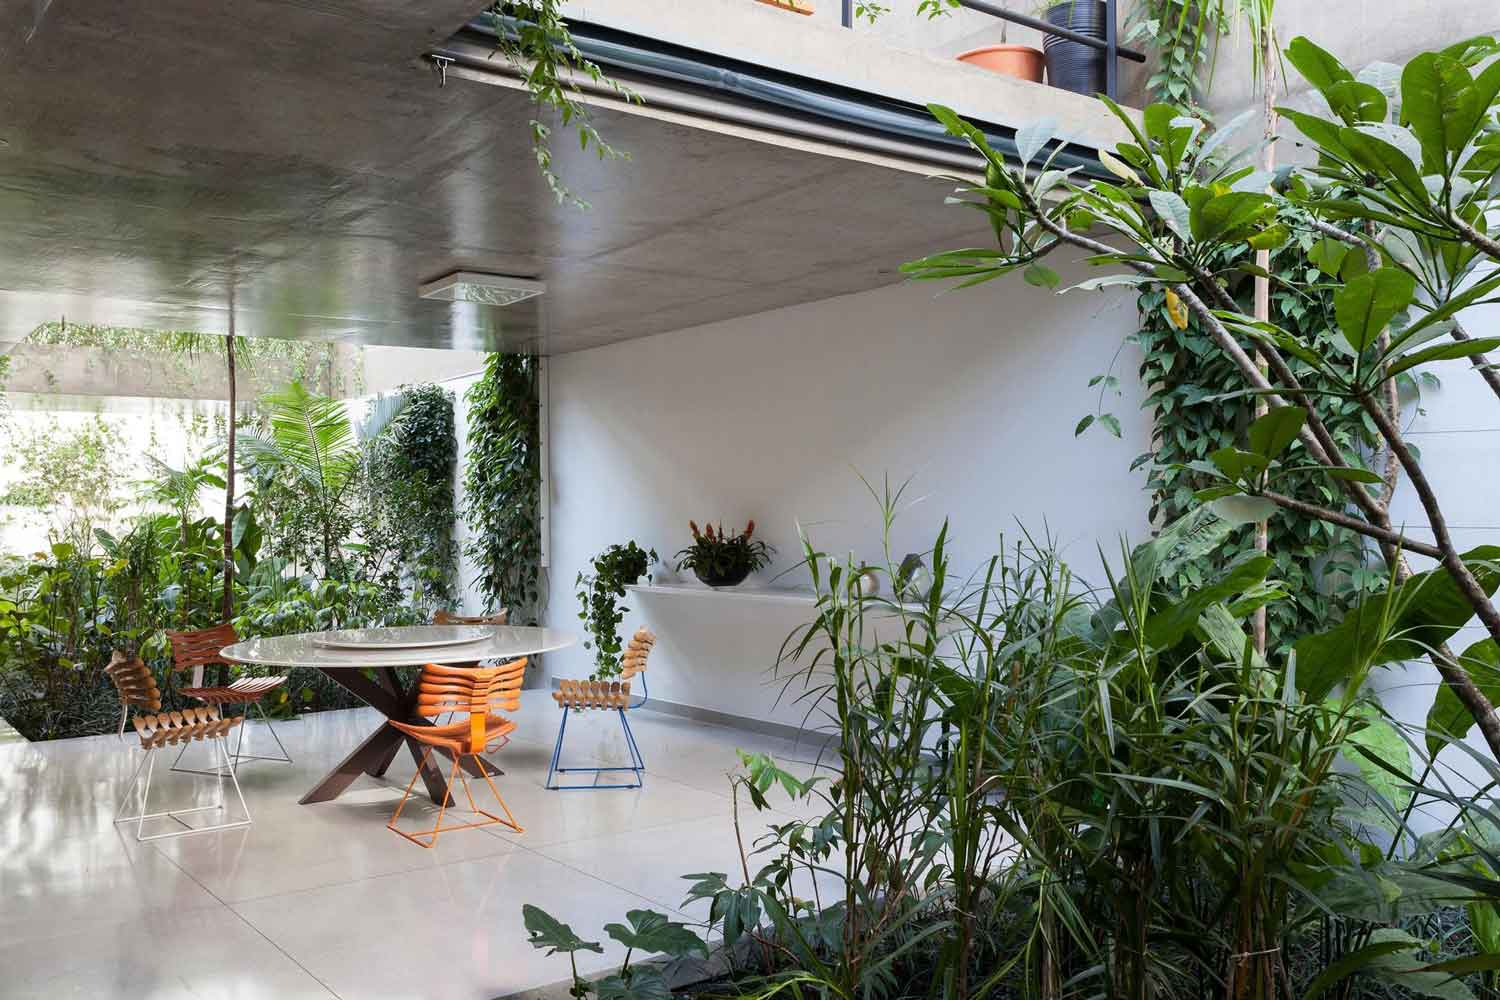 Jardins House by CR2 Arquitetura in São Paulo | Yellowtrace